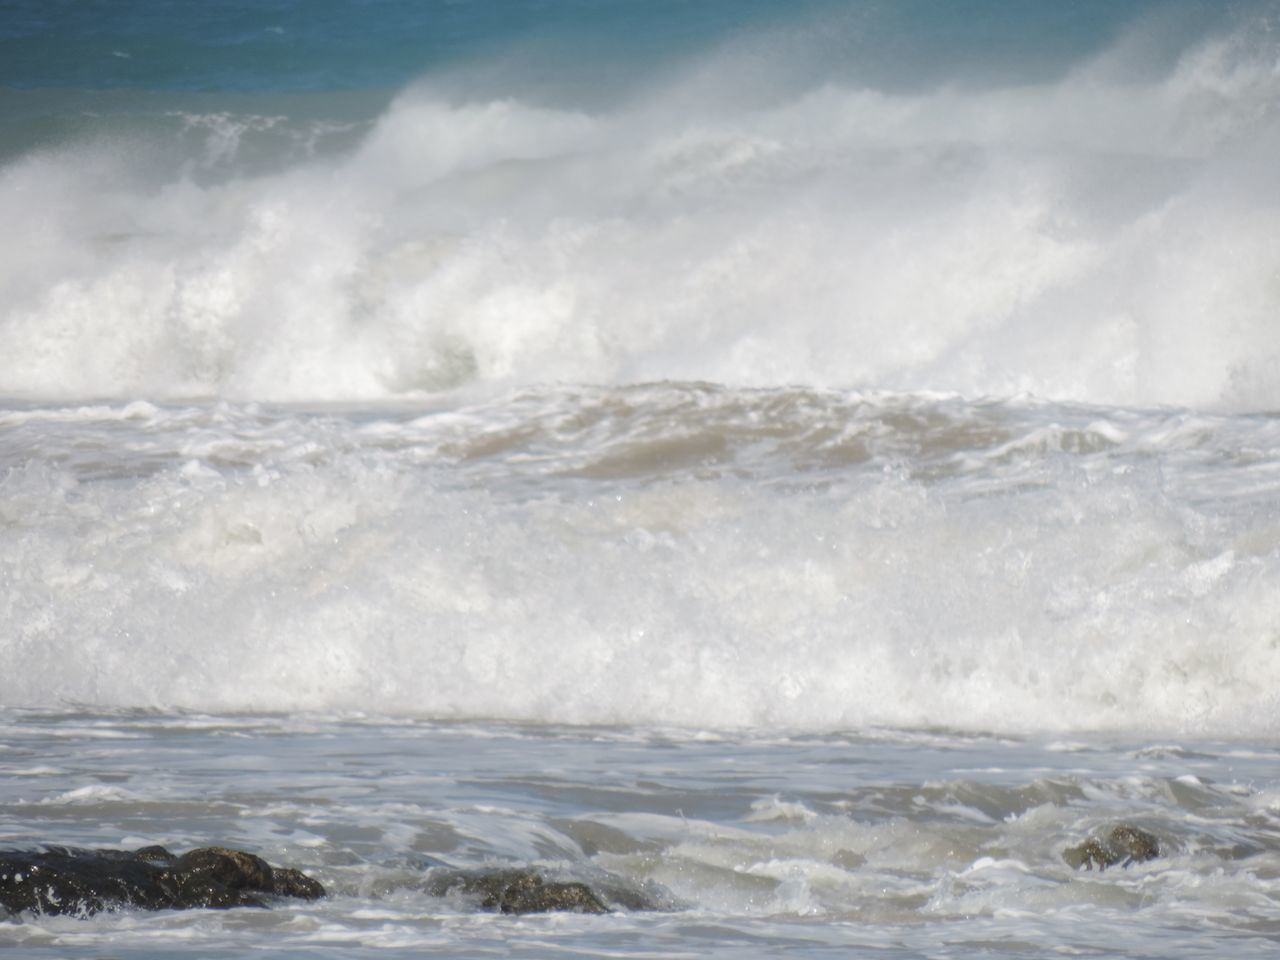 Nature Wave Water Sea Beauty In Nature Outdoors Day Power In Nature No People Scenics Atlantic Ocean Rough Sea Dangerous